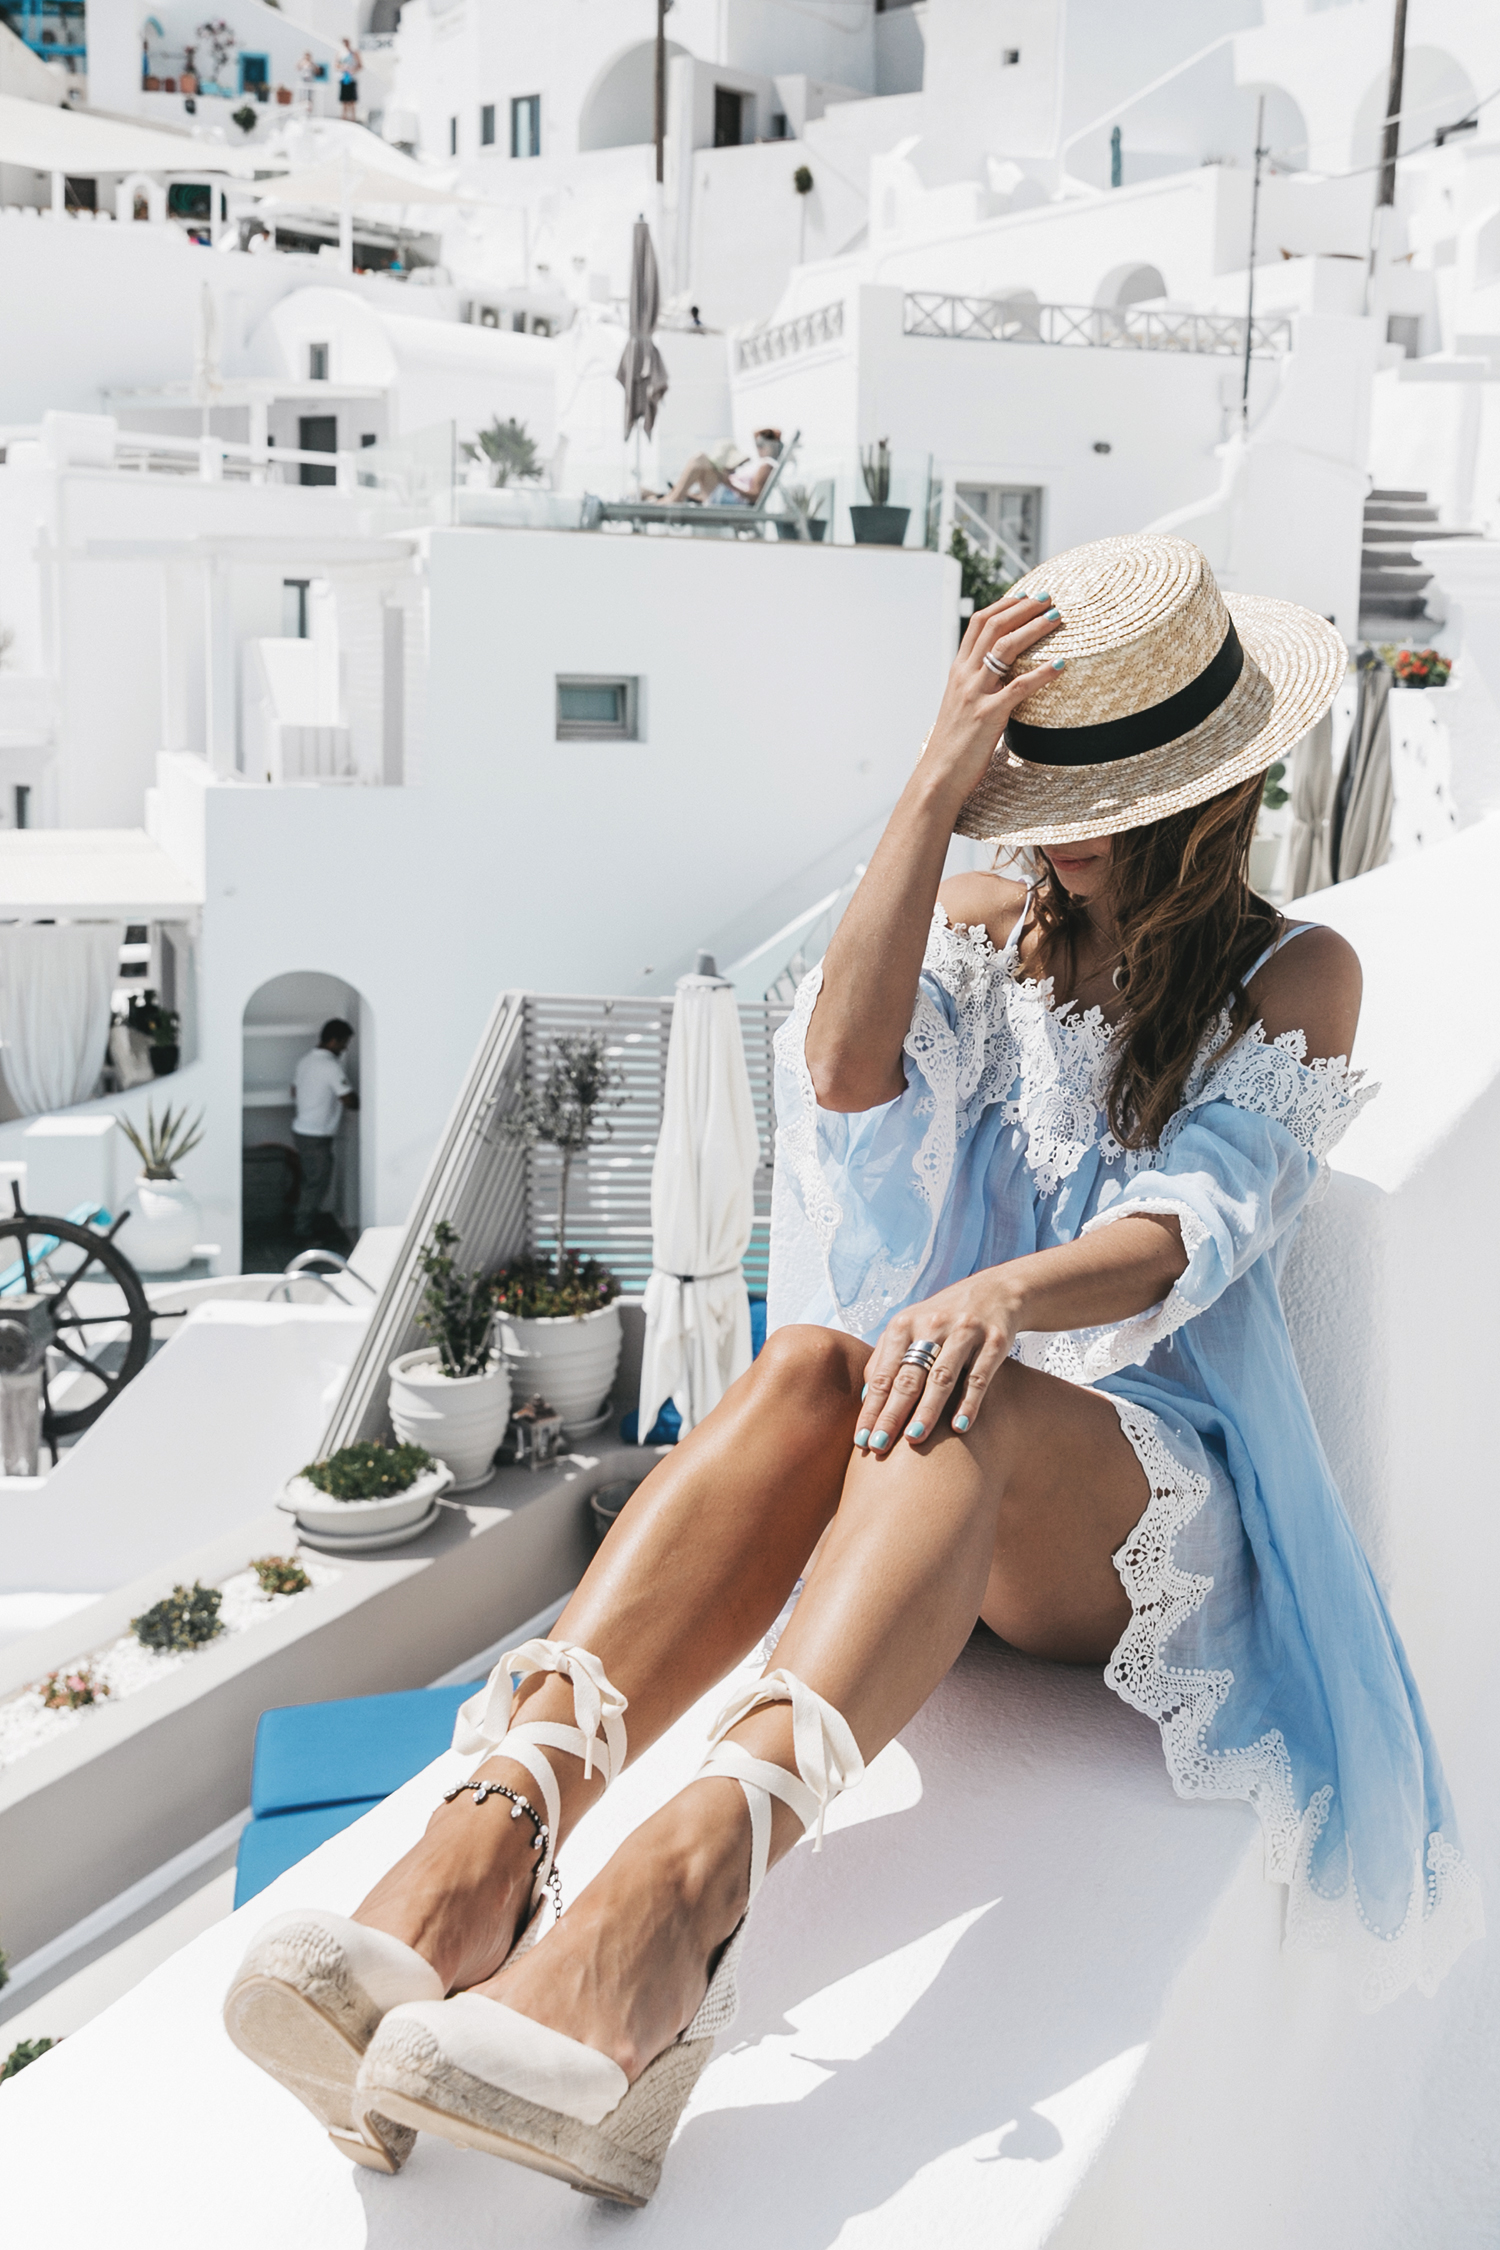 Blue_Dress-Soludos_Escapes-Soludos_Espadrilles-Canotier-Hat-Lack_Of_Color-Summer-Santorini-Collage_Vintage-59